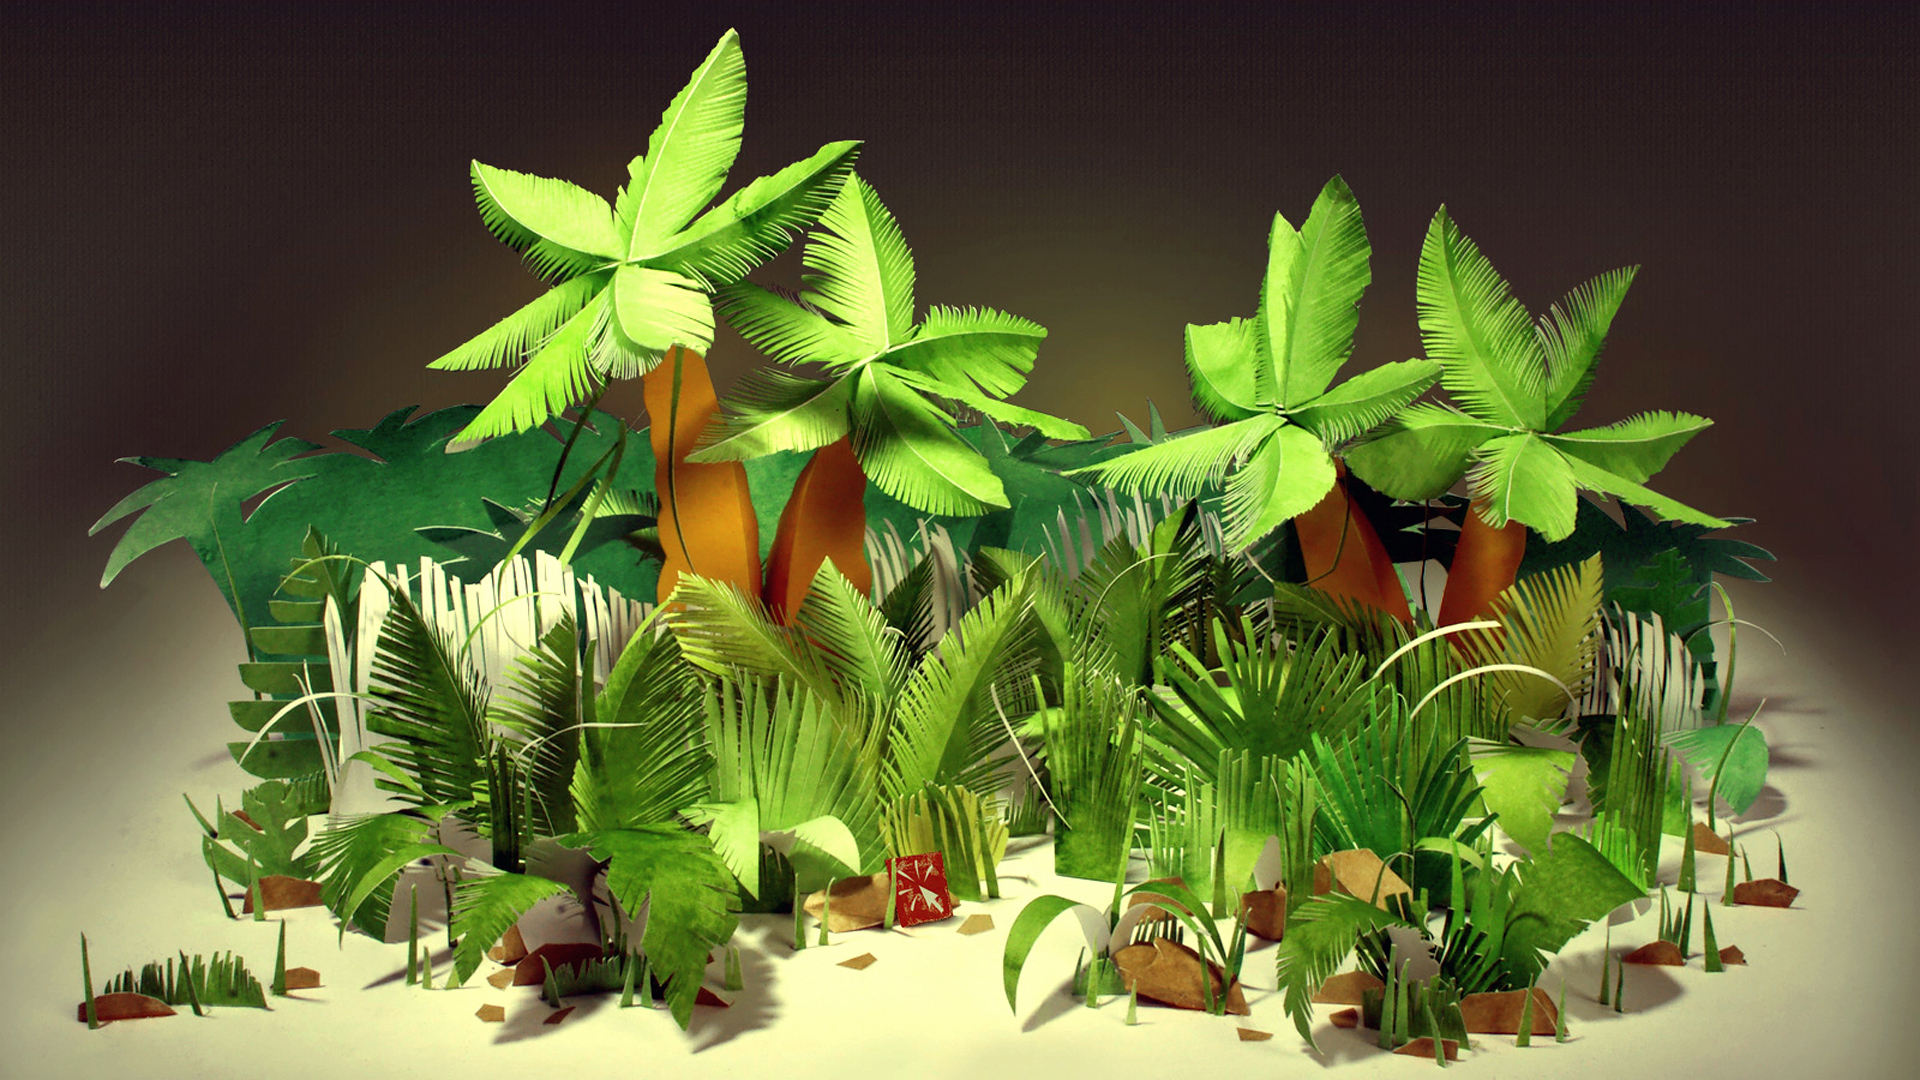 jungles tropical palm trees bushes leaves paper cardboard wallpaper 1920x1080